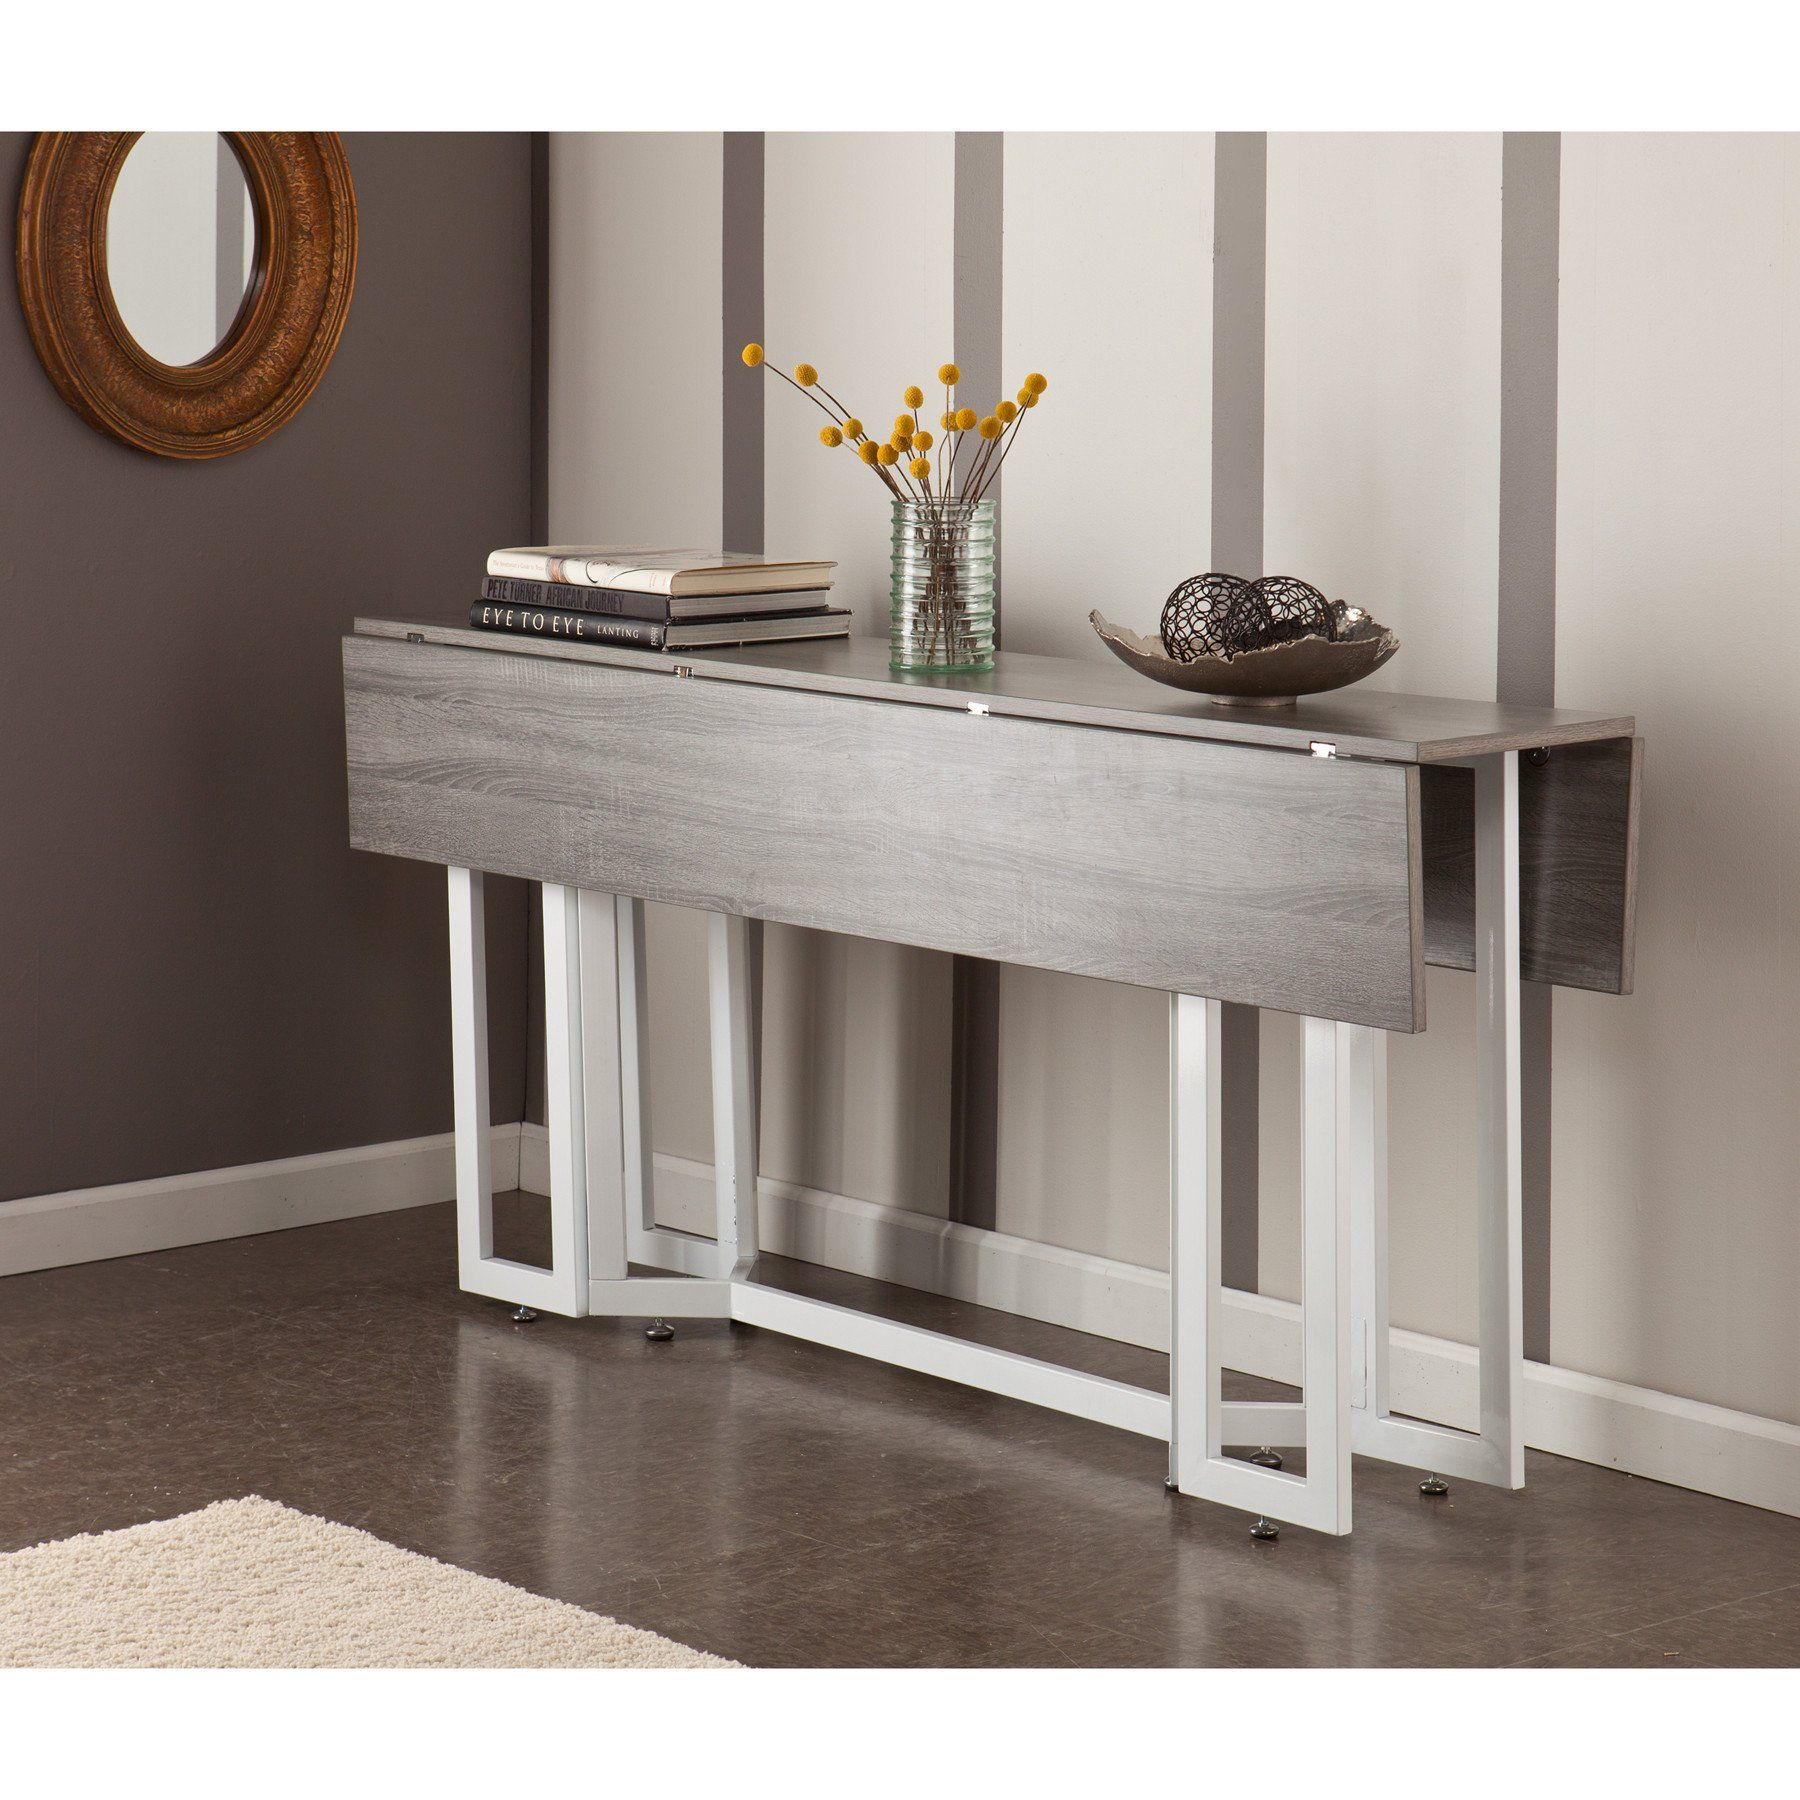 Driness Dining Table Space Saving Dining Table Drop Leaf Table